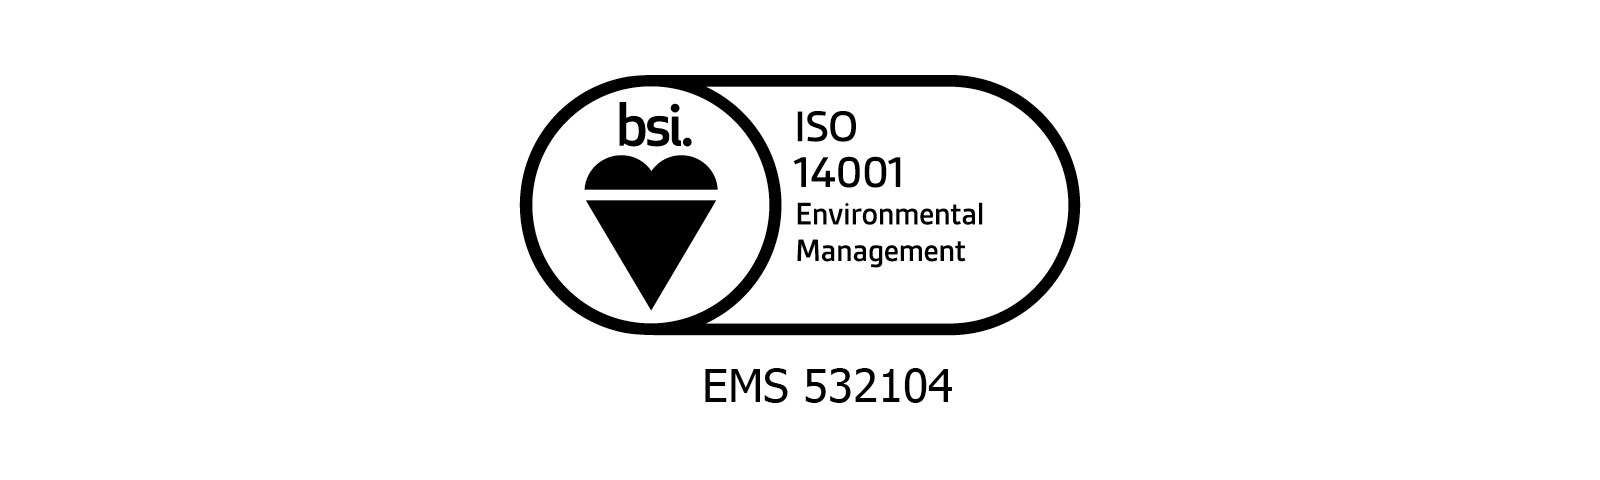 Thorlux Environmental Certification Upgraded to ISO 14001:2015 gallery image